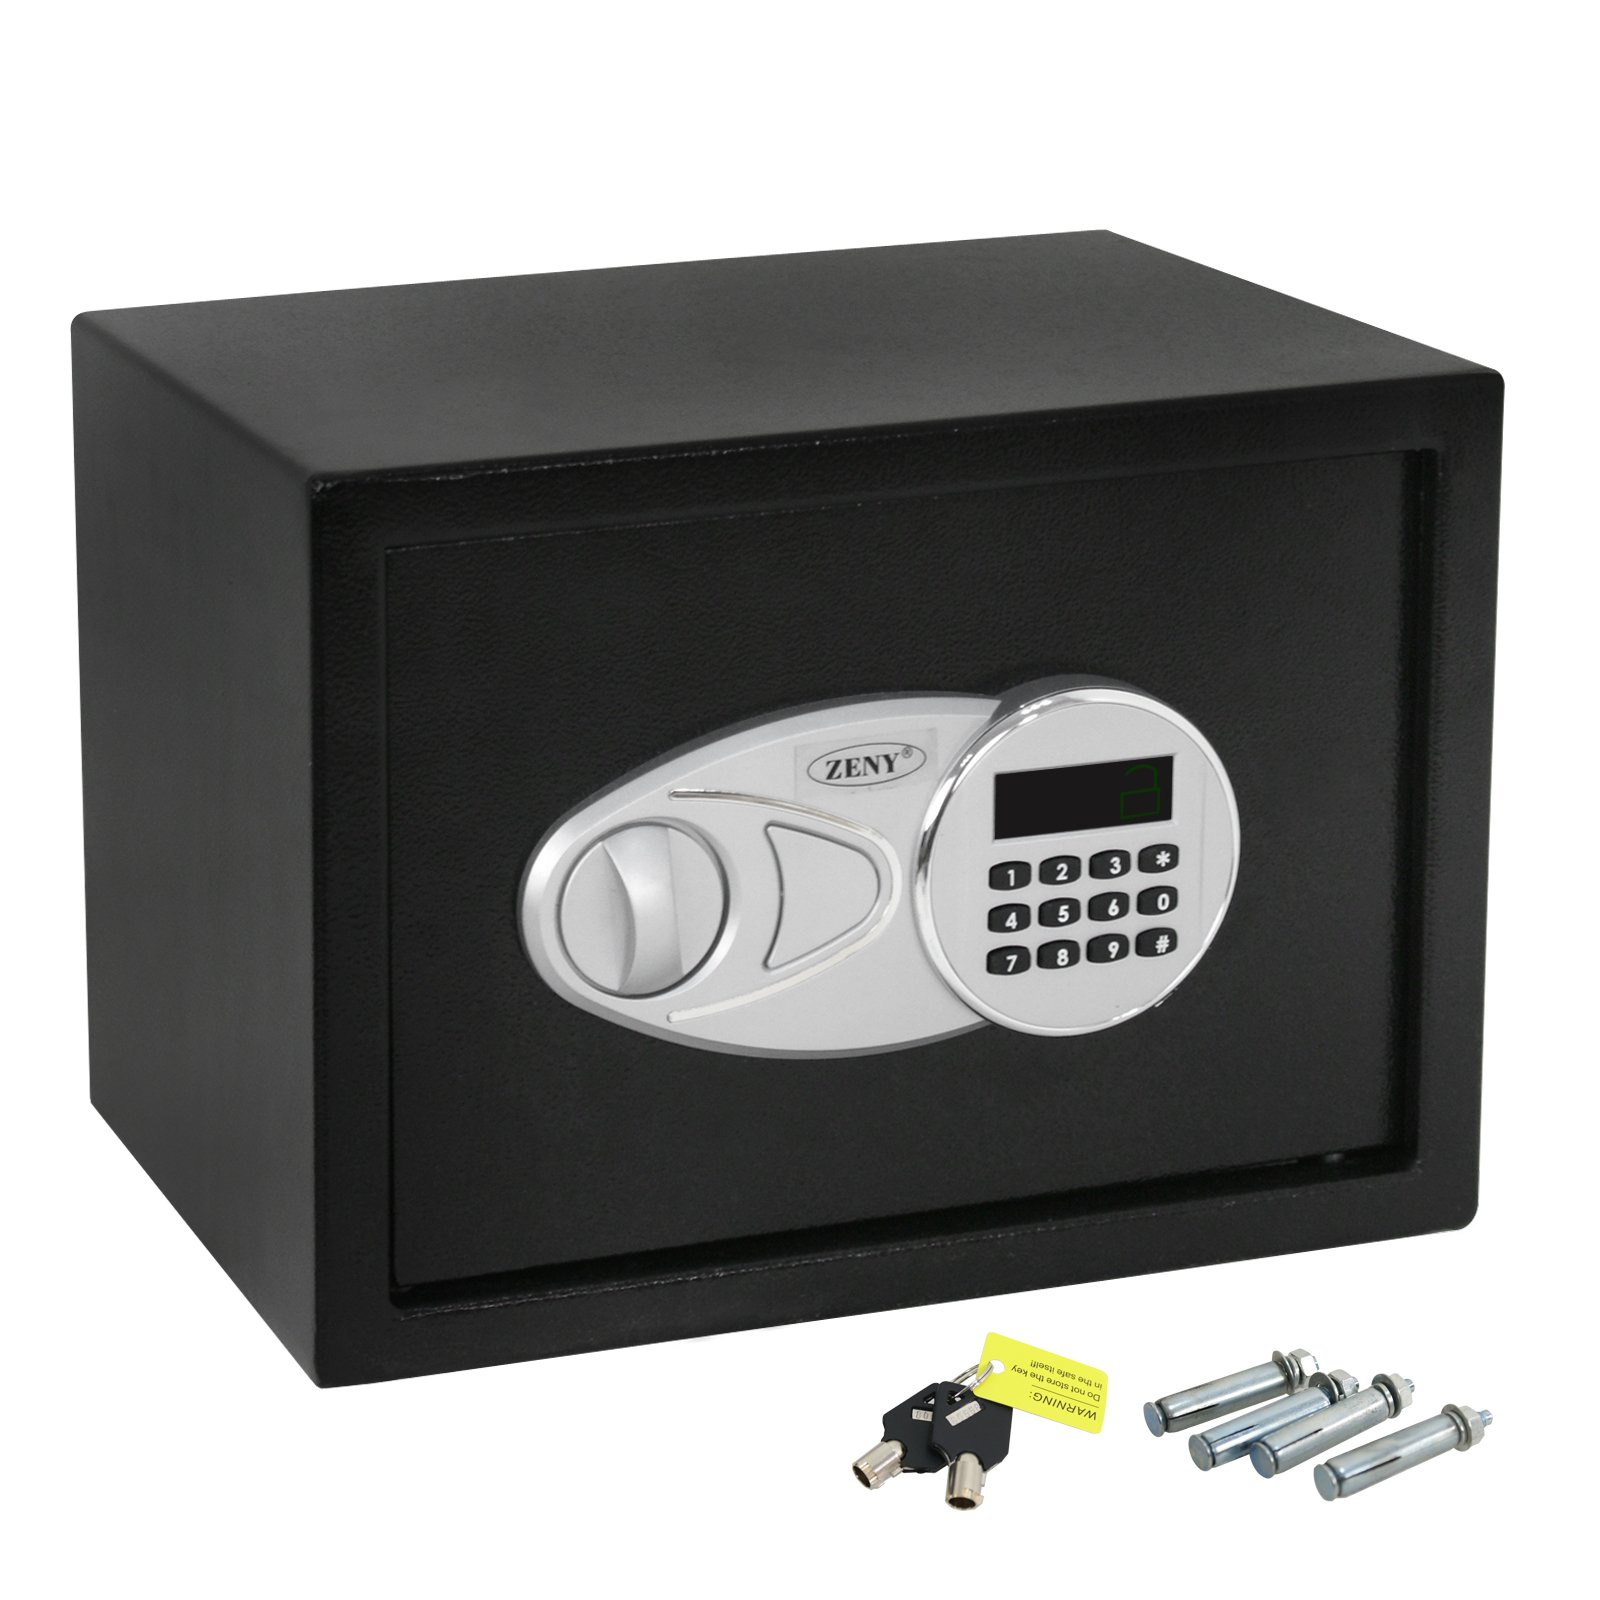 ZENY Digital Security Safe Box Sturdy Construction w/Electronic Lock, 2 Emergency Override Keys (#02)